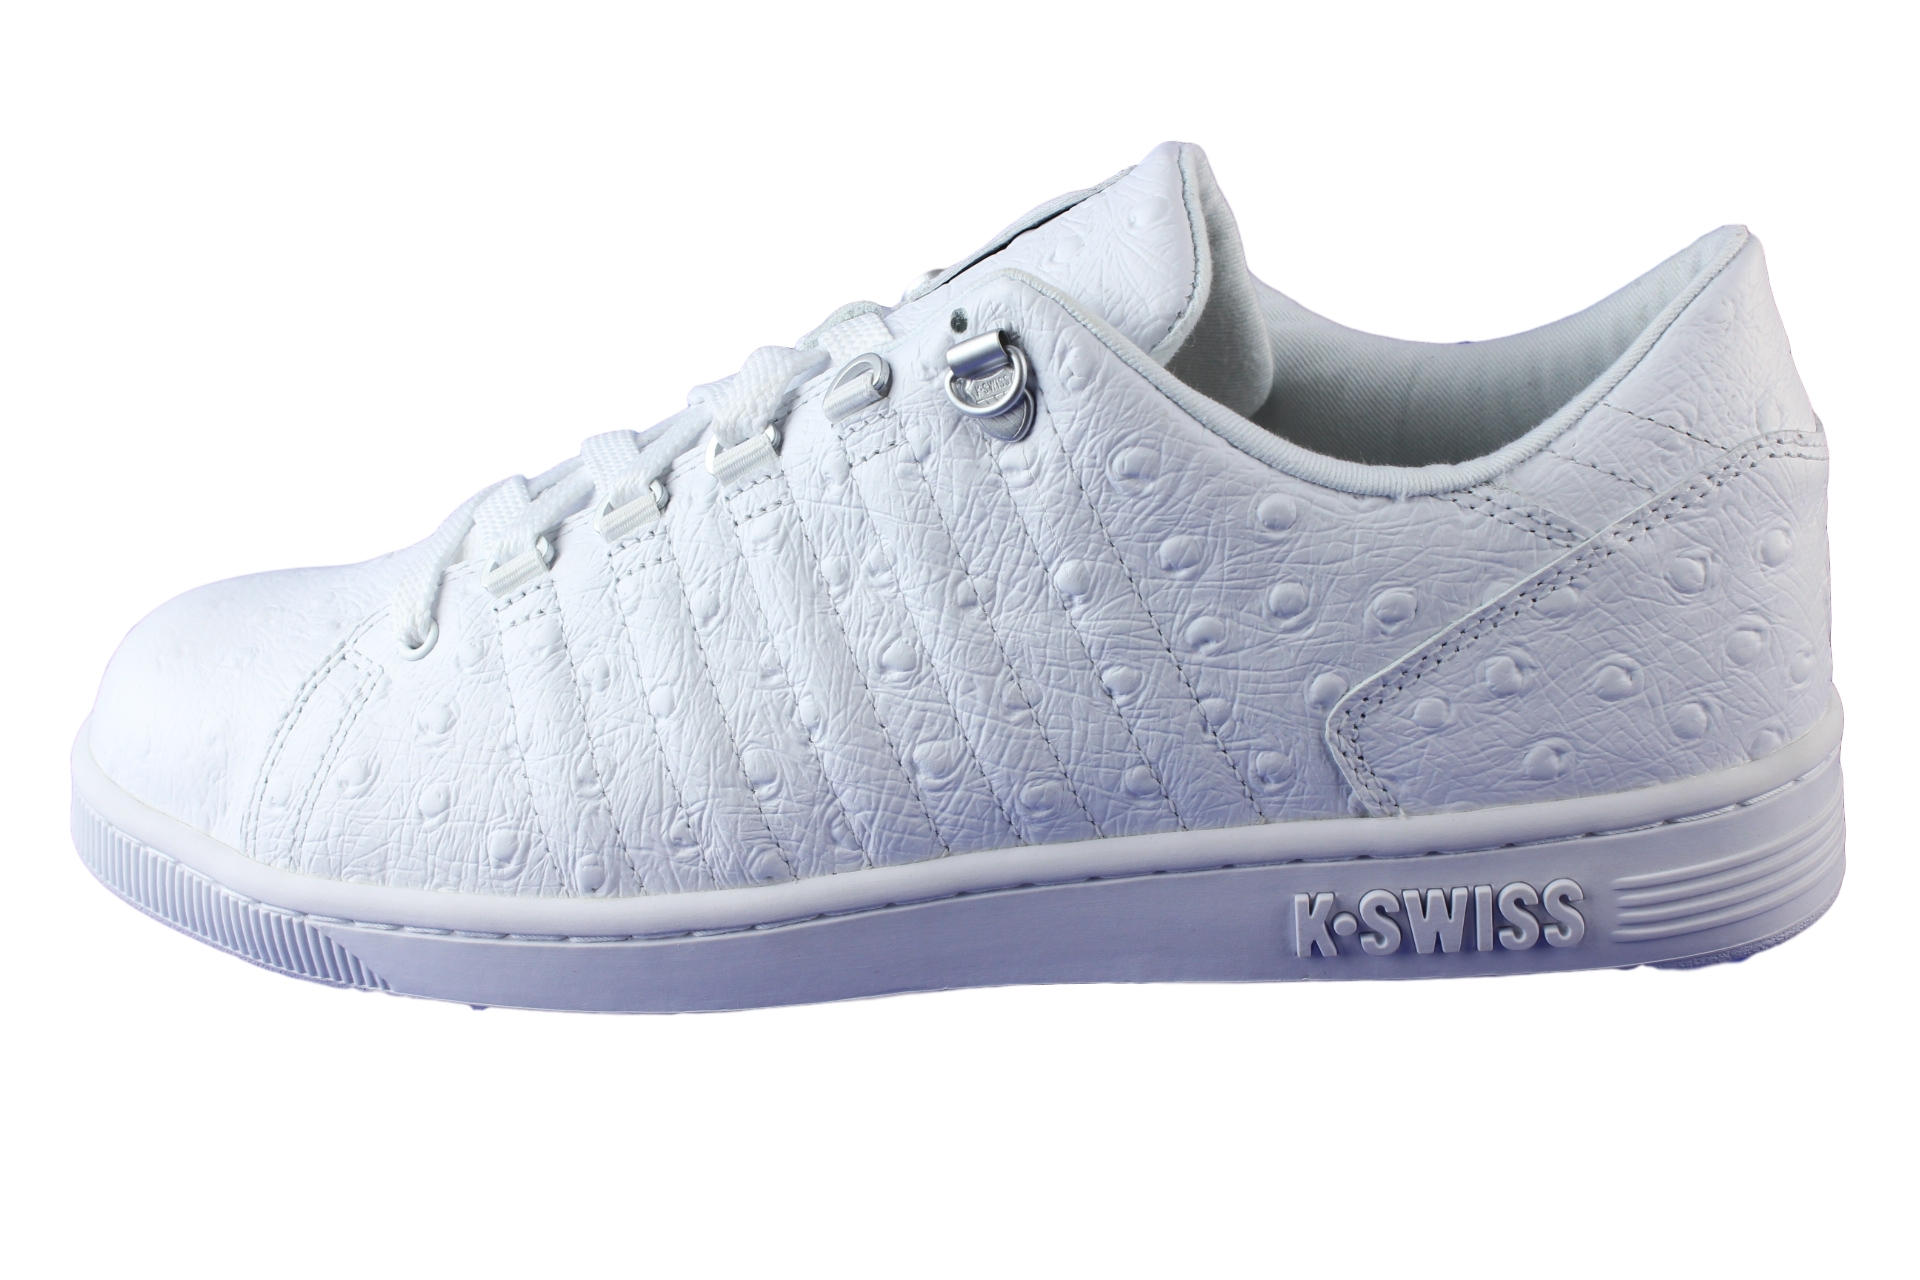 k swiss lozan iii p trainers shoes leather white white. Black Bedroom Furniture Sets. Home Design Ideas